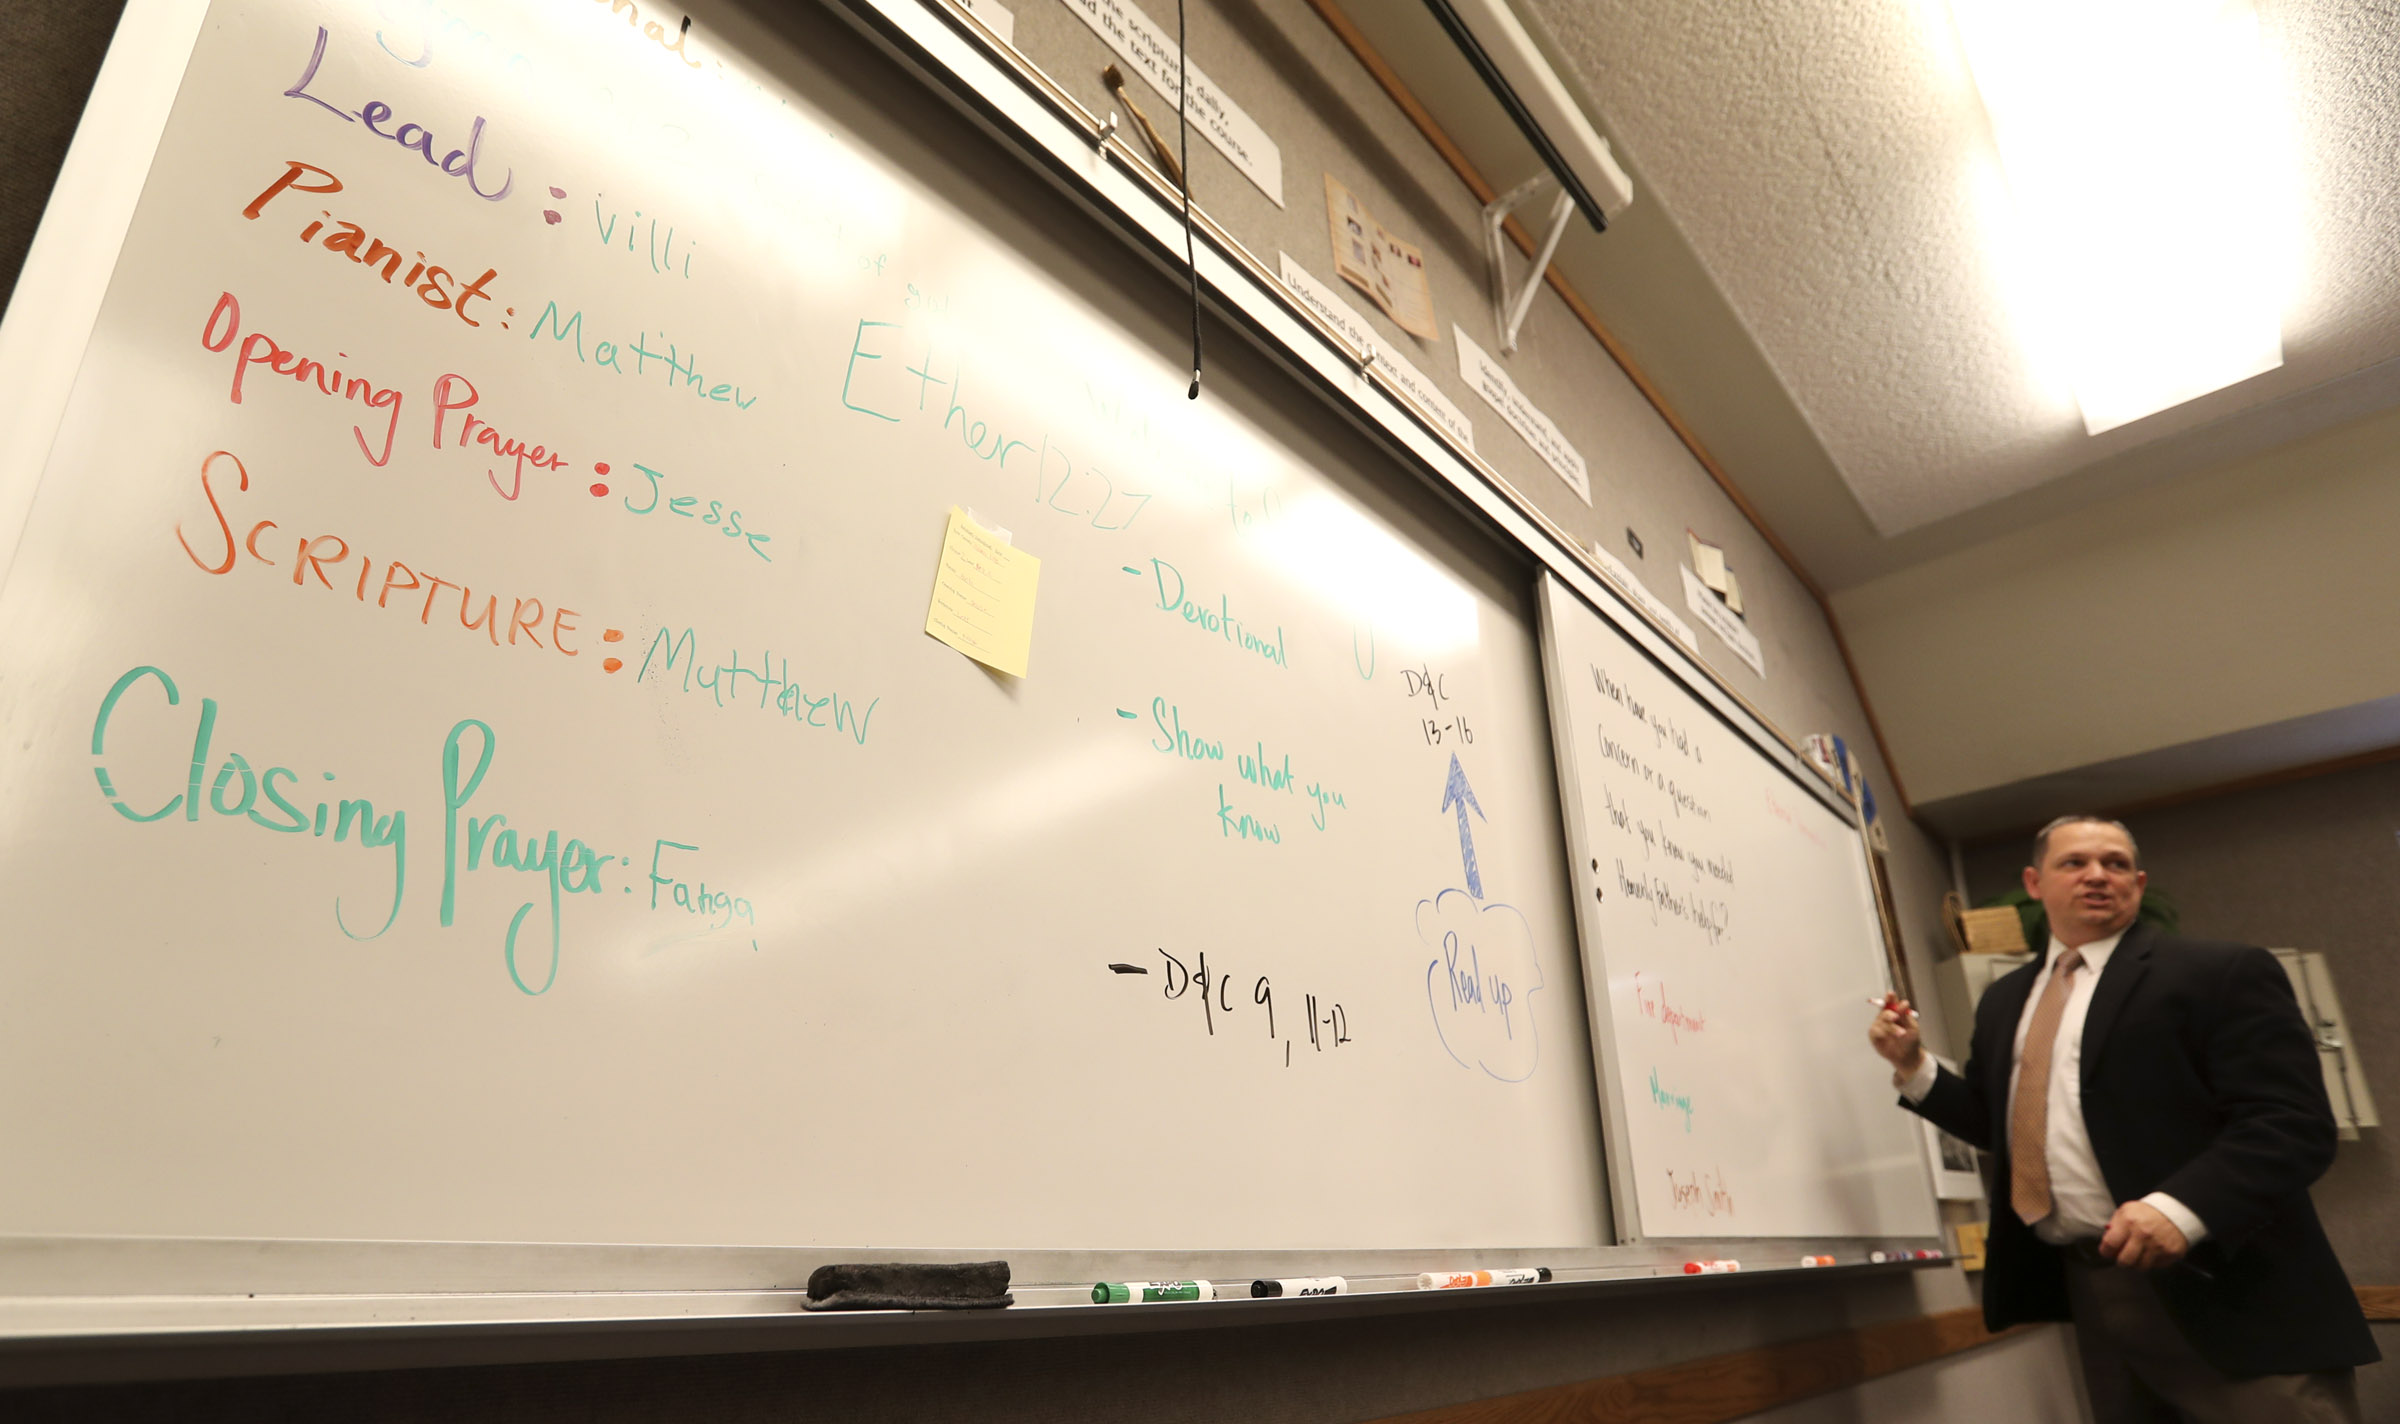 West High's Seminary principal, Trent Smith, writes on the board during an LDS seminary class at West High School in Salt Lake City on Monday, Sept. 17, 2018.